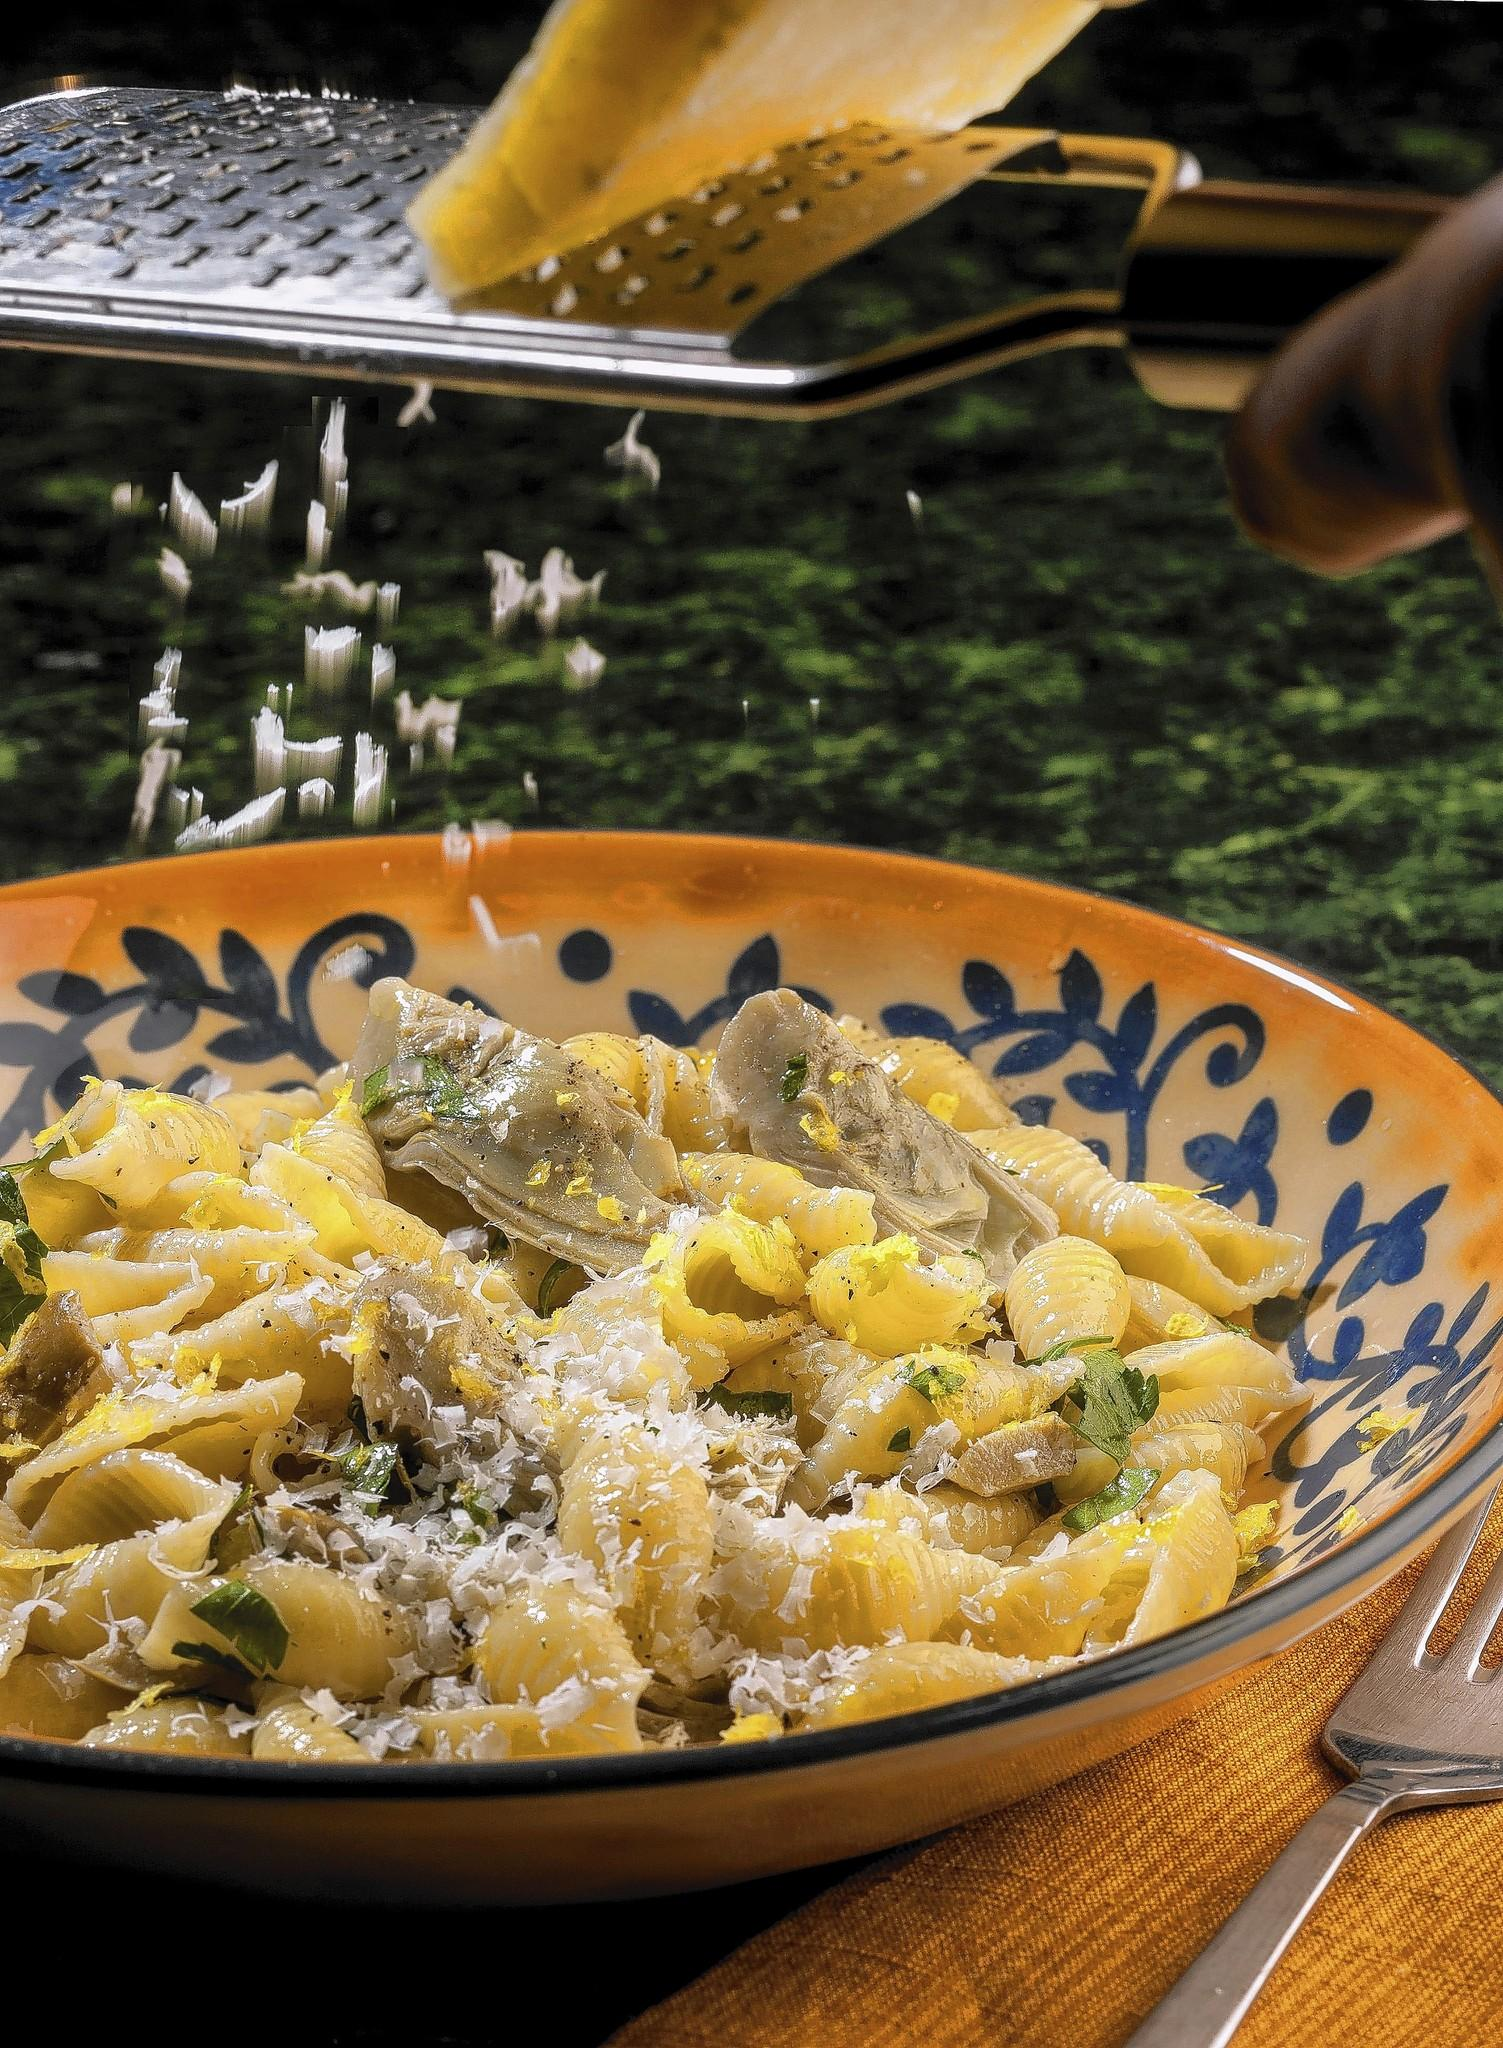 Finished dish of pasta shells with artichokes.